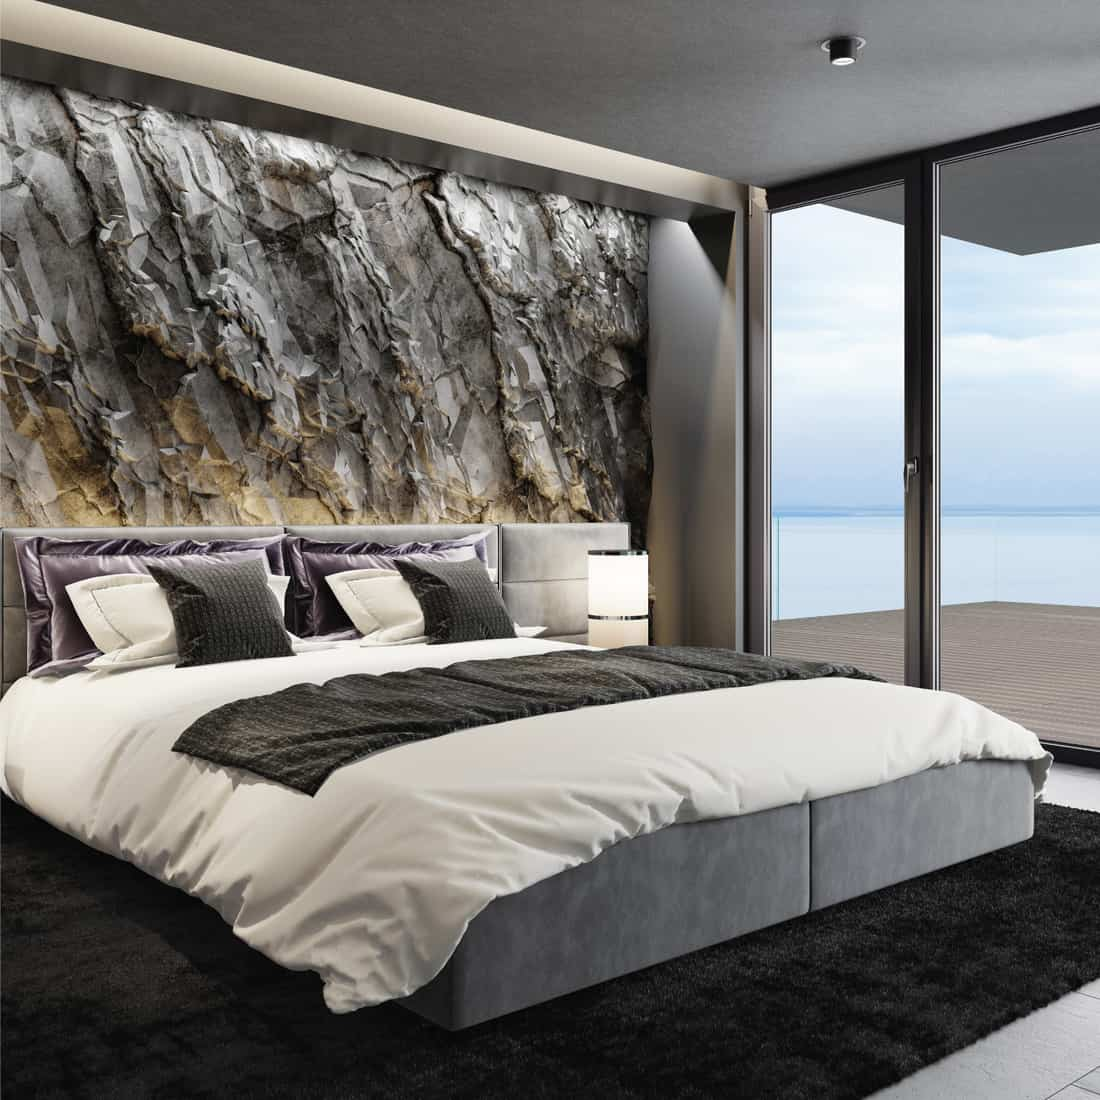 what color bedding goes with black